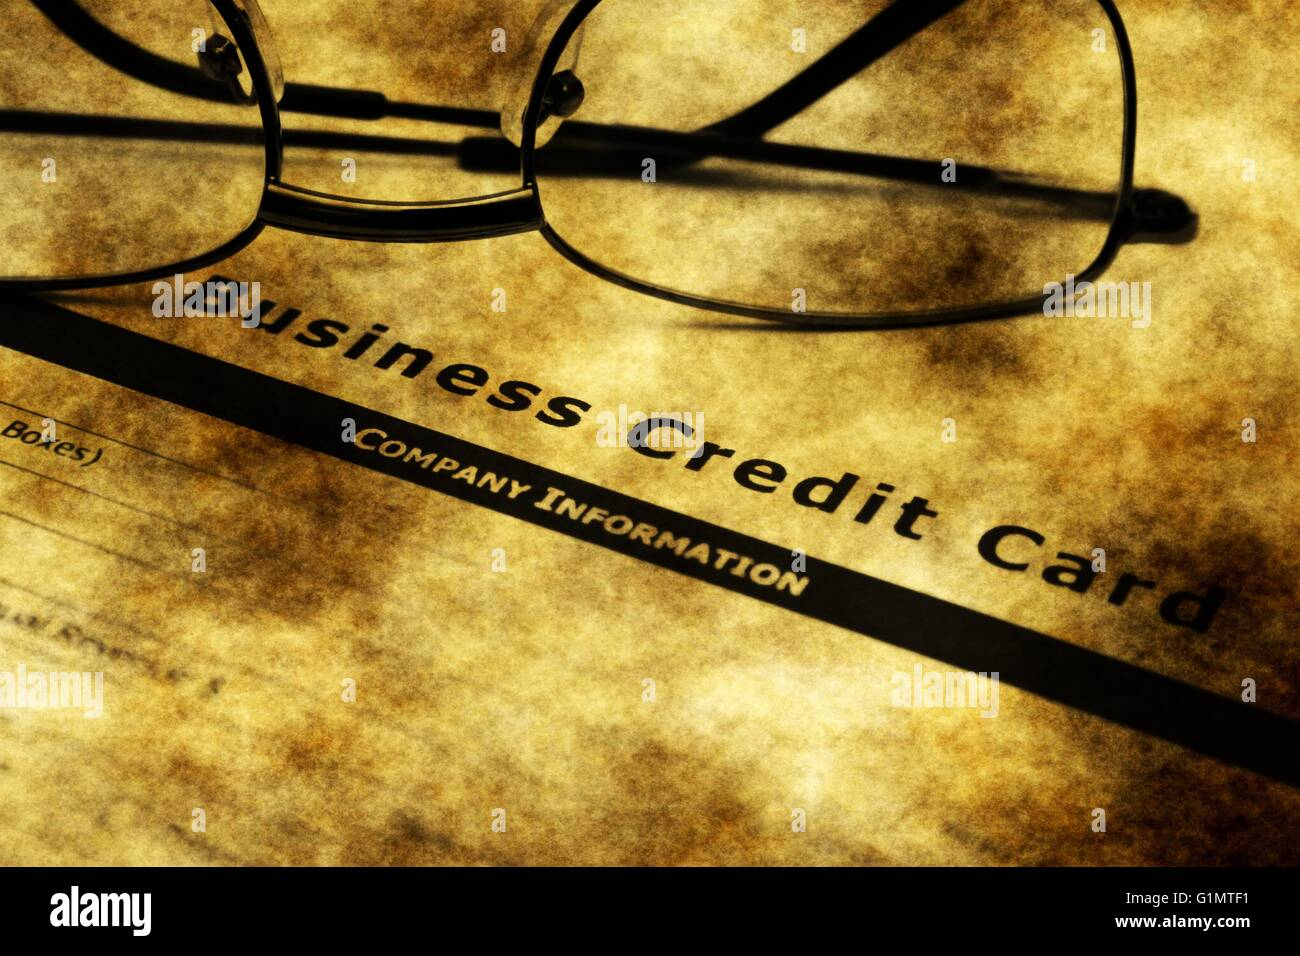 Business credit card application grunge concept stock photo business credit card application grunge concept reheart Gallery